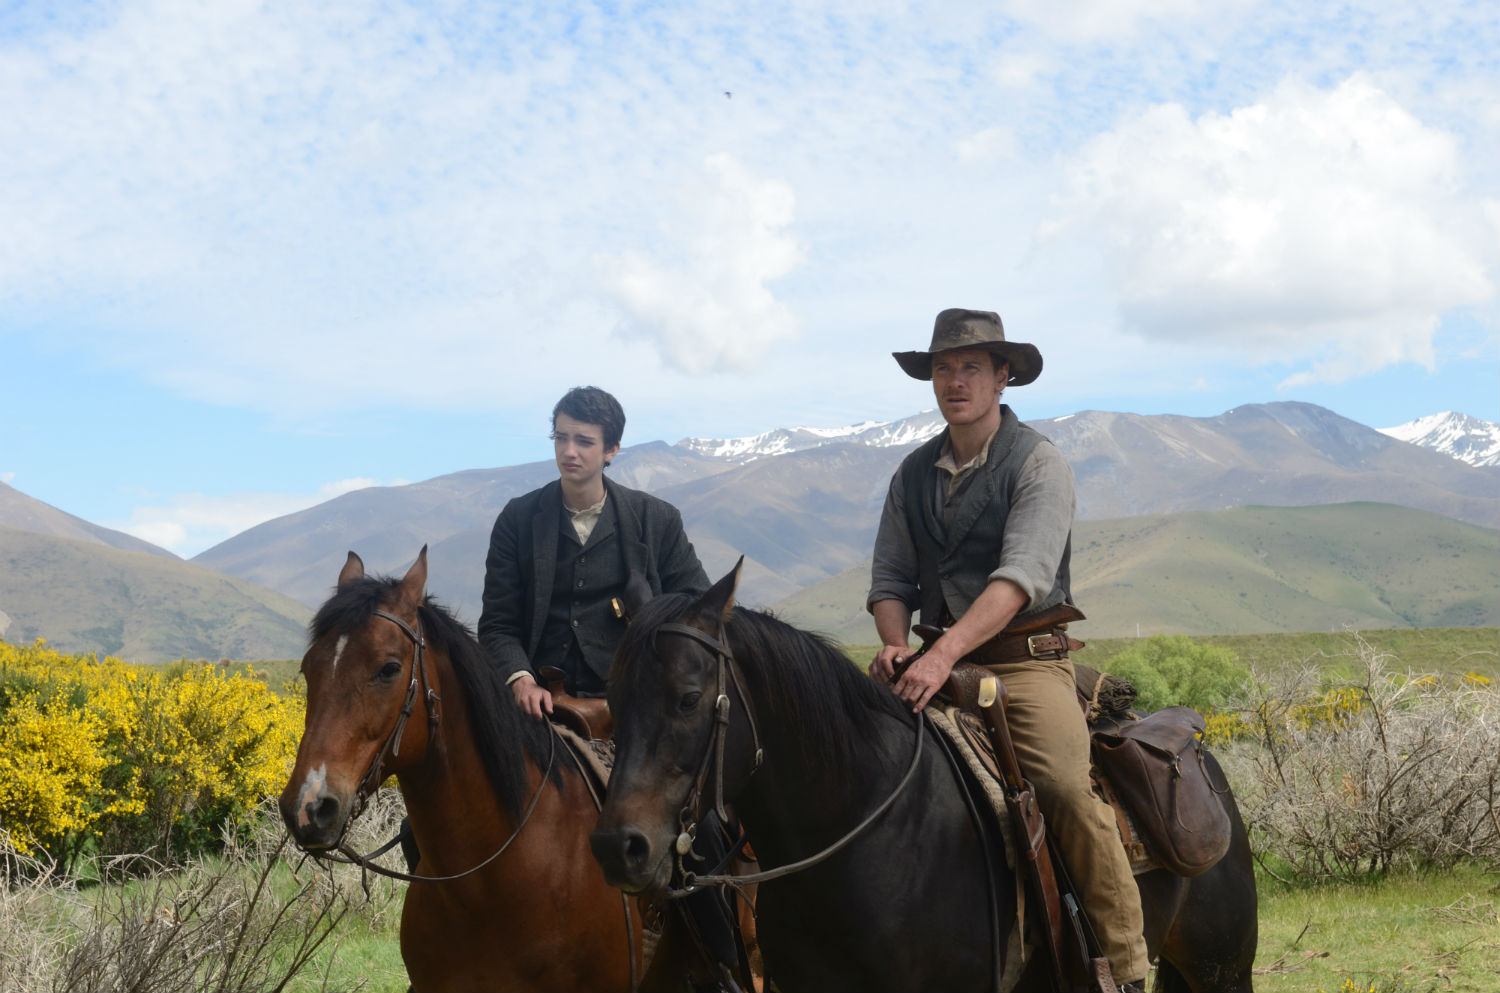 slow west film 2015 horses michael fassbender